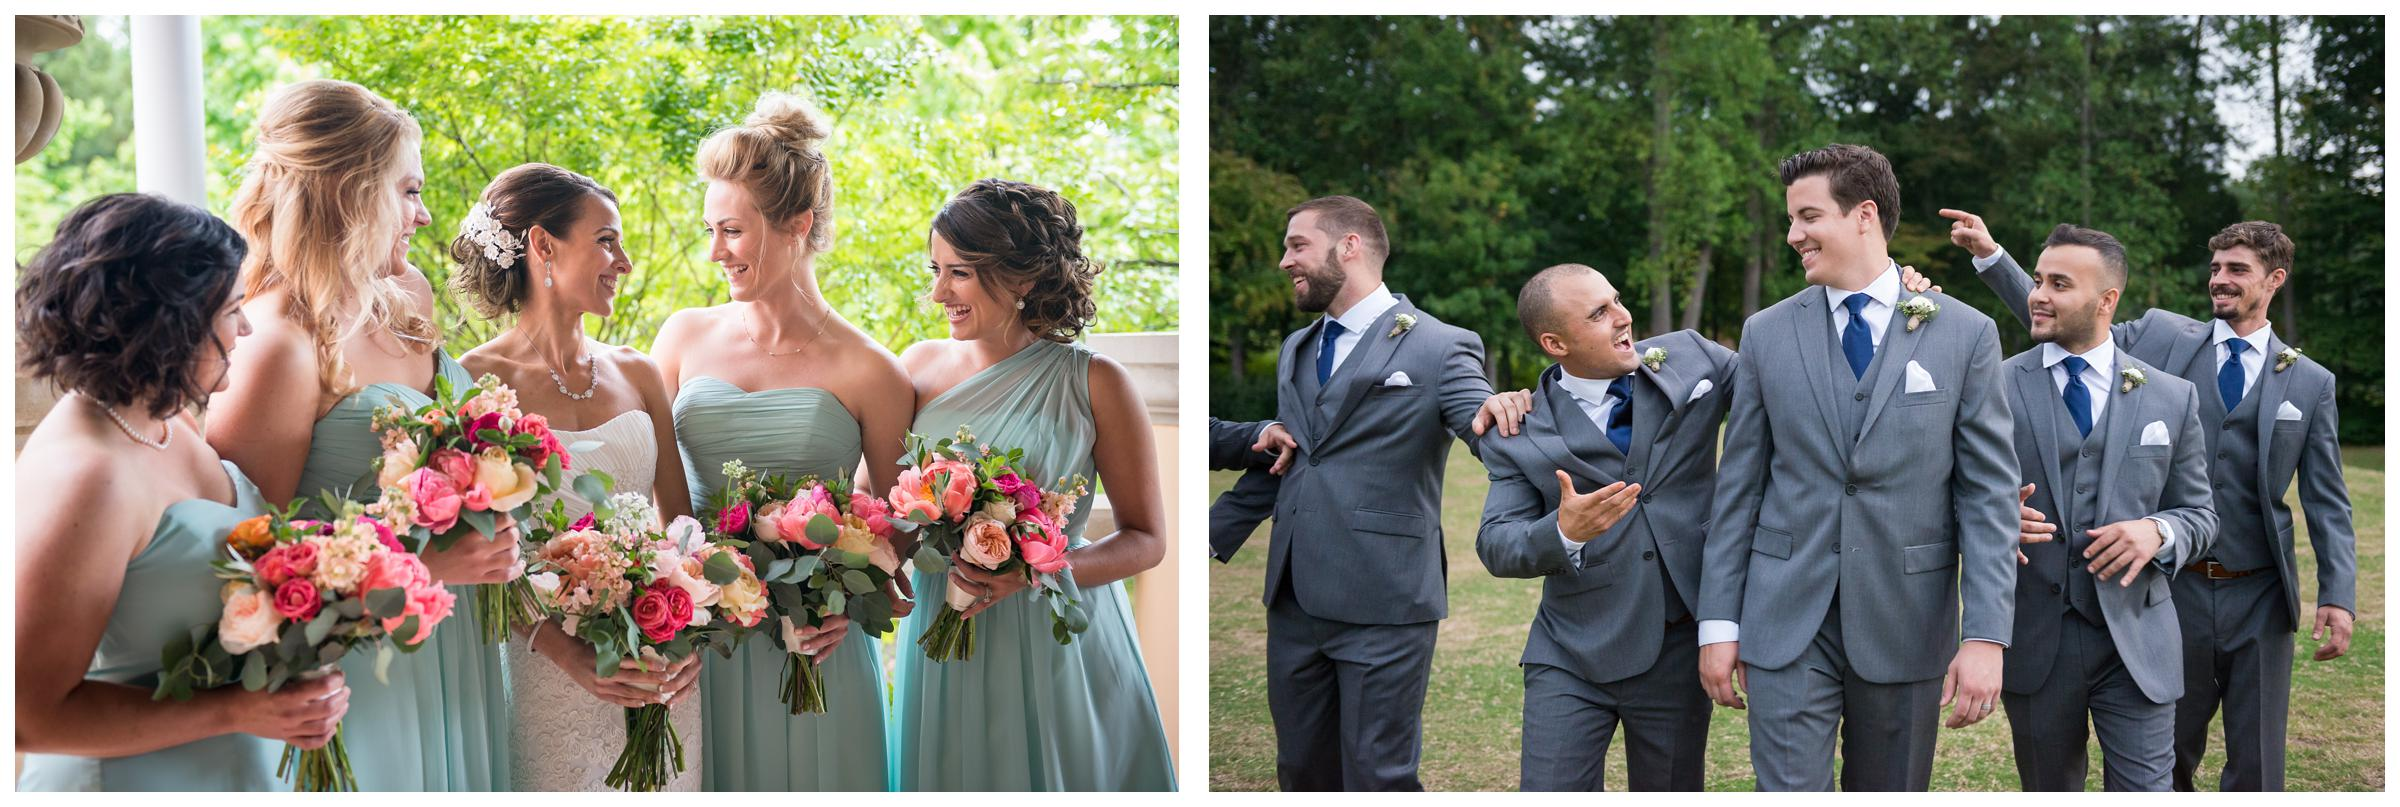 bridesmaids and groomsmen laughing